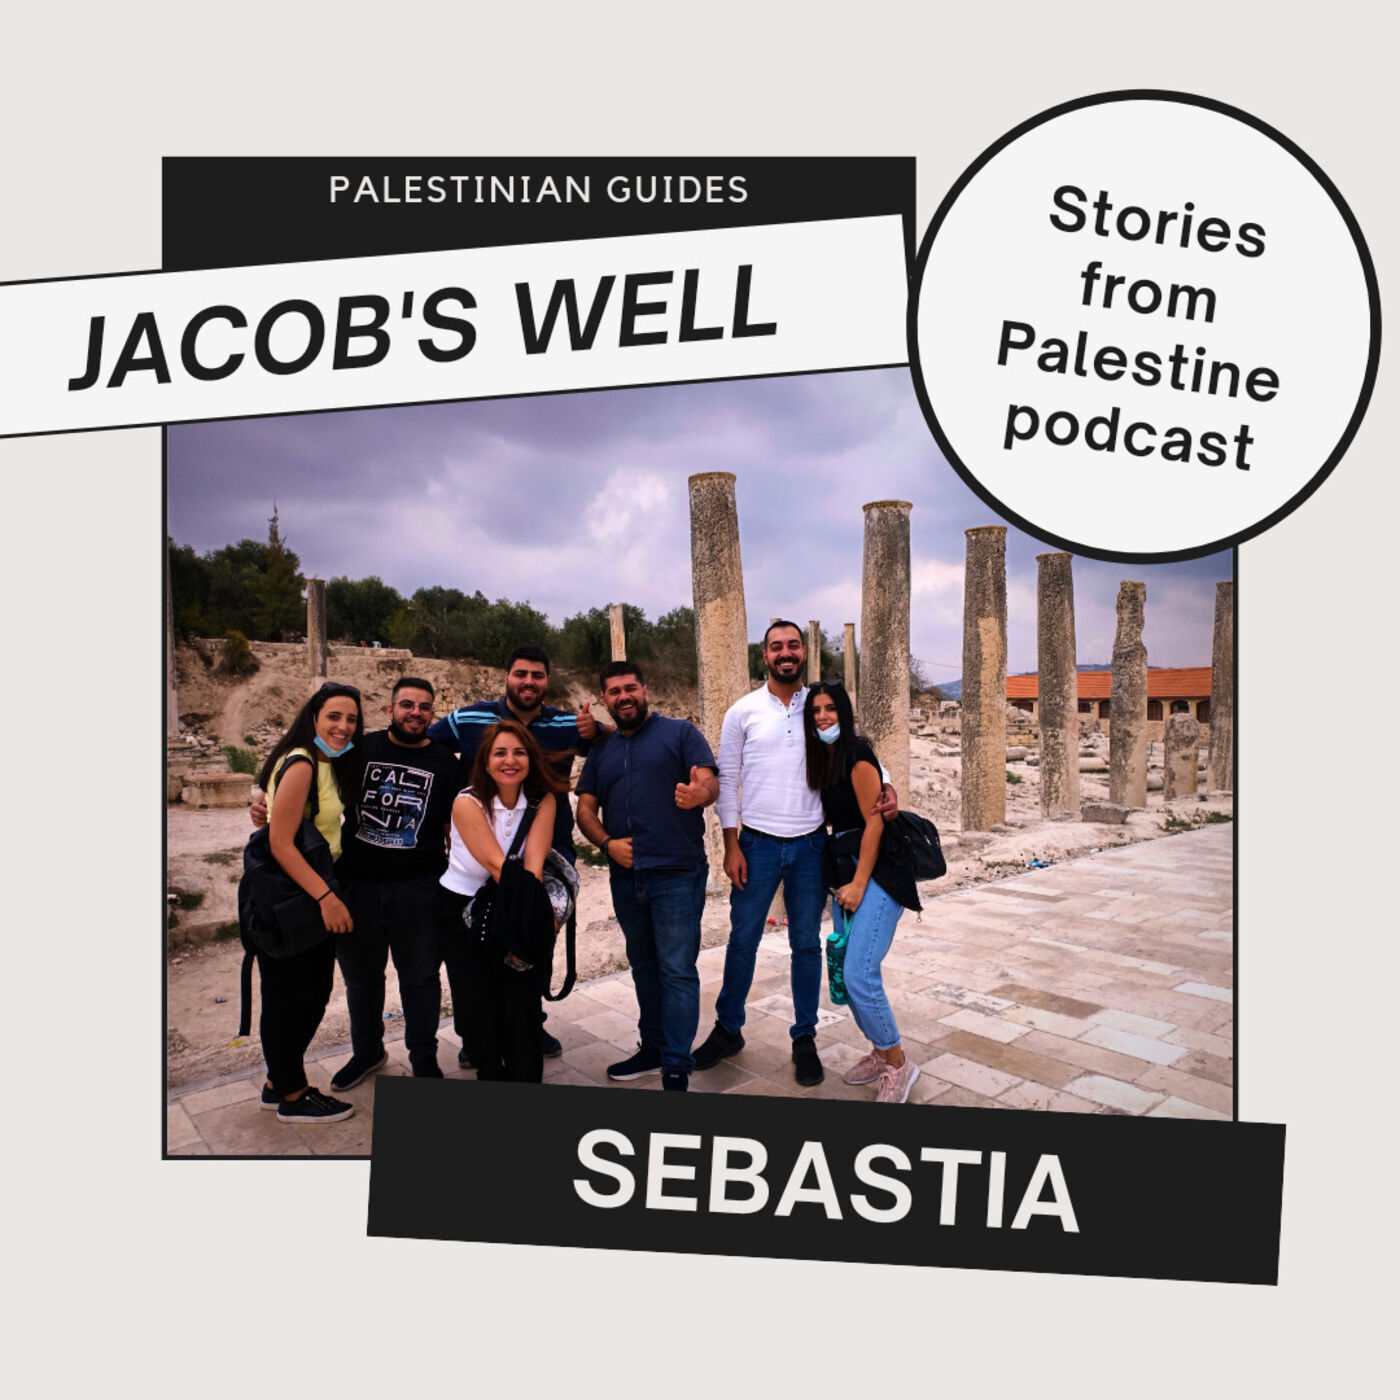 Guided visit to Jacob's well in Nablus and Sebastia archaeological site